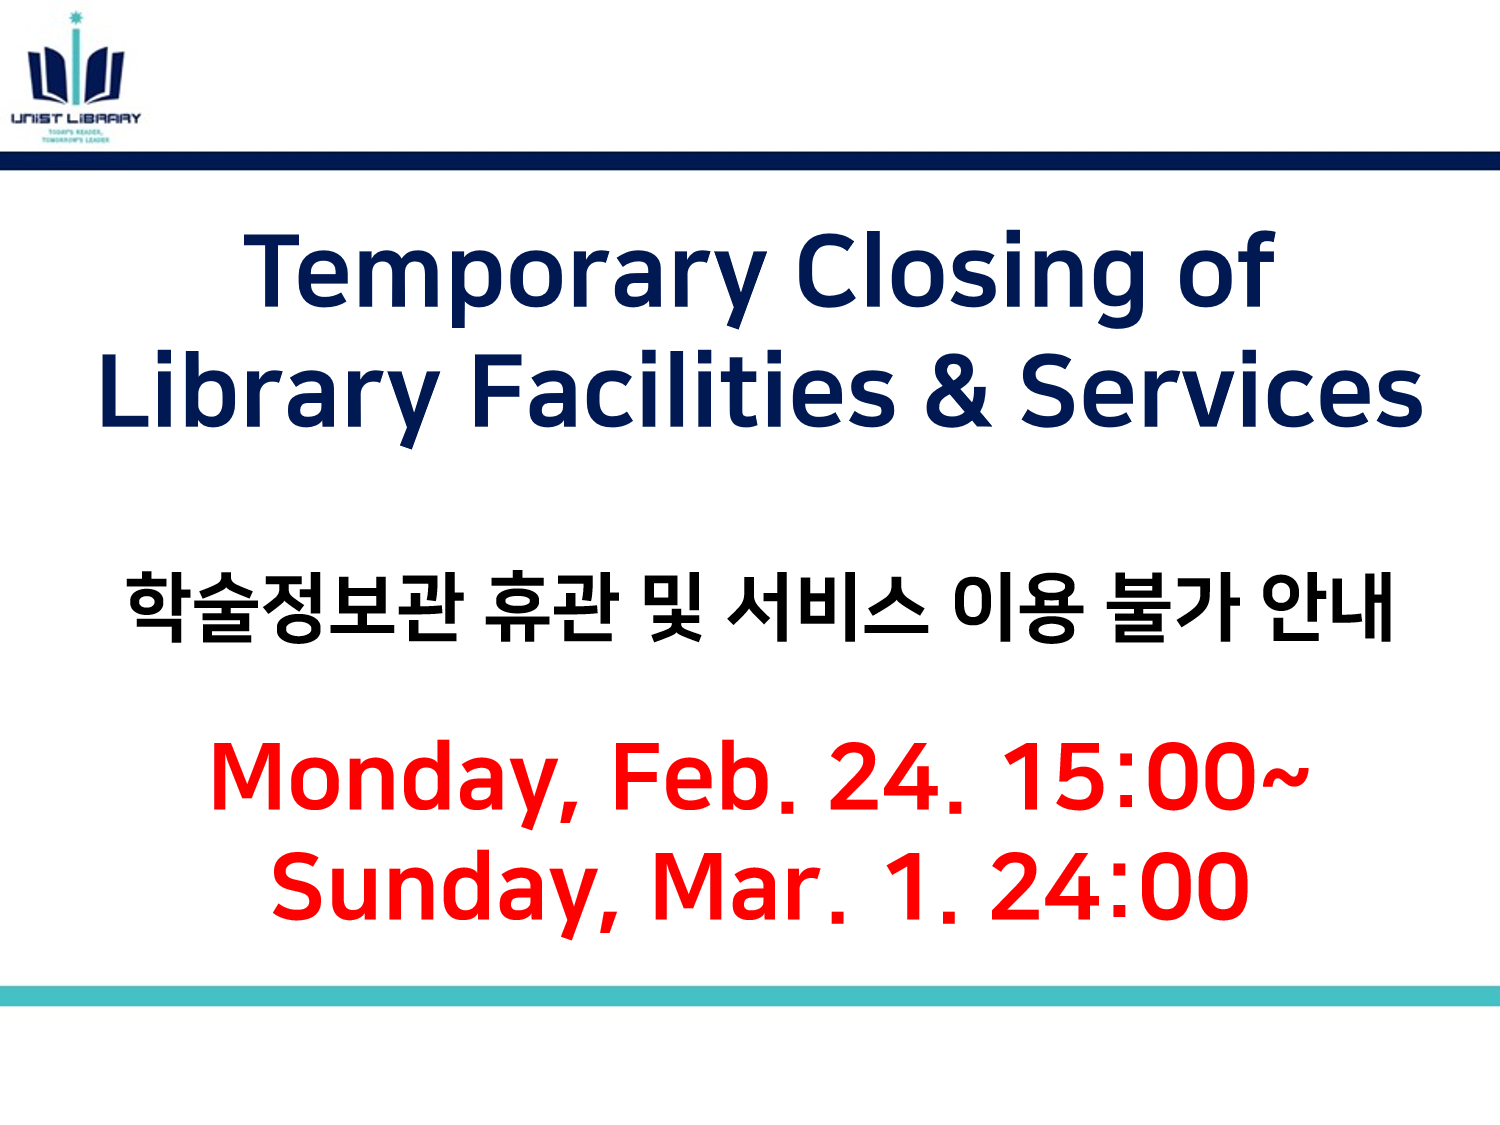 Temporary Closing of Library Facilities & Services (Feb. 24 ~ Mar. 1)